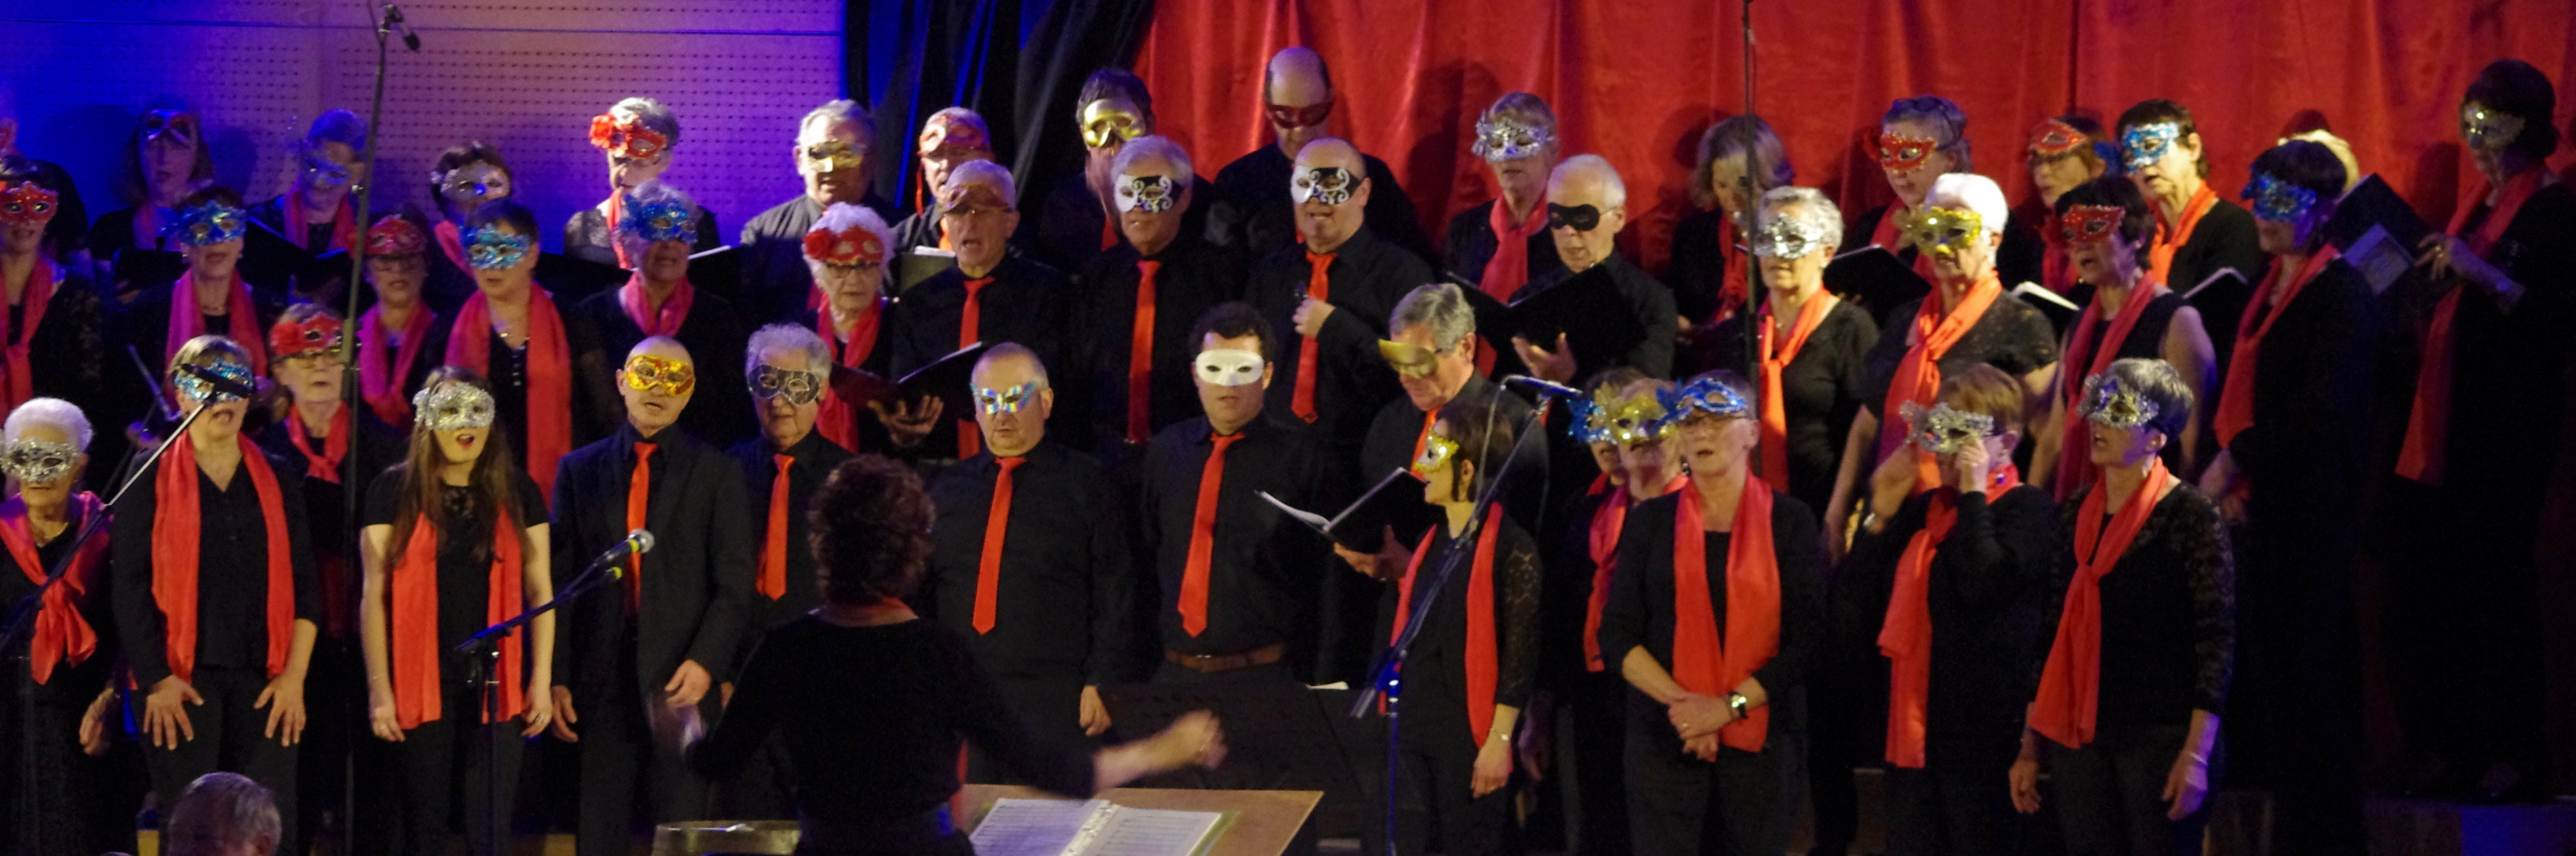 Spectacle 20 ans - 56